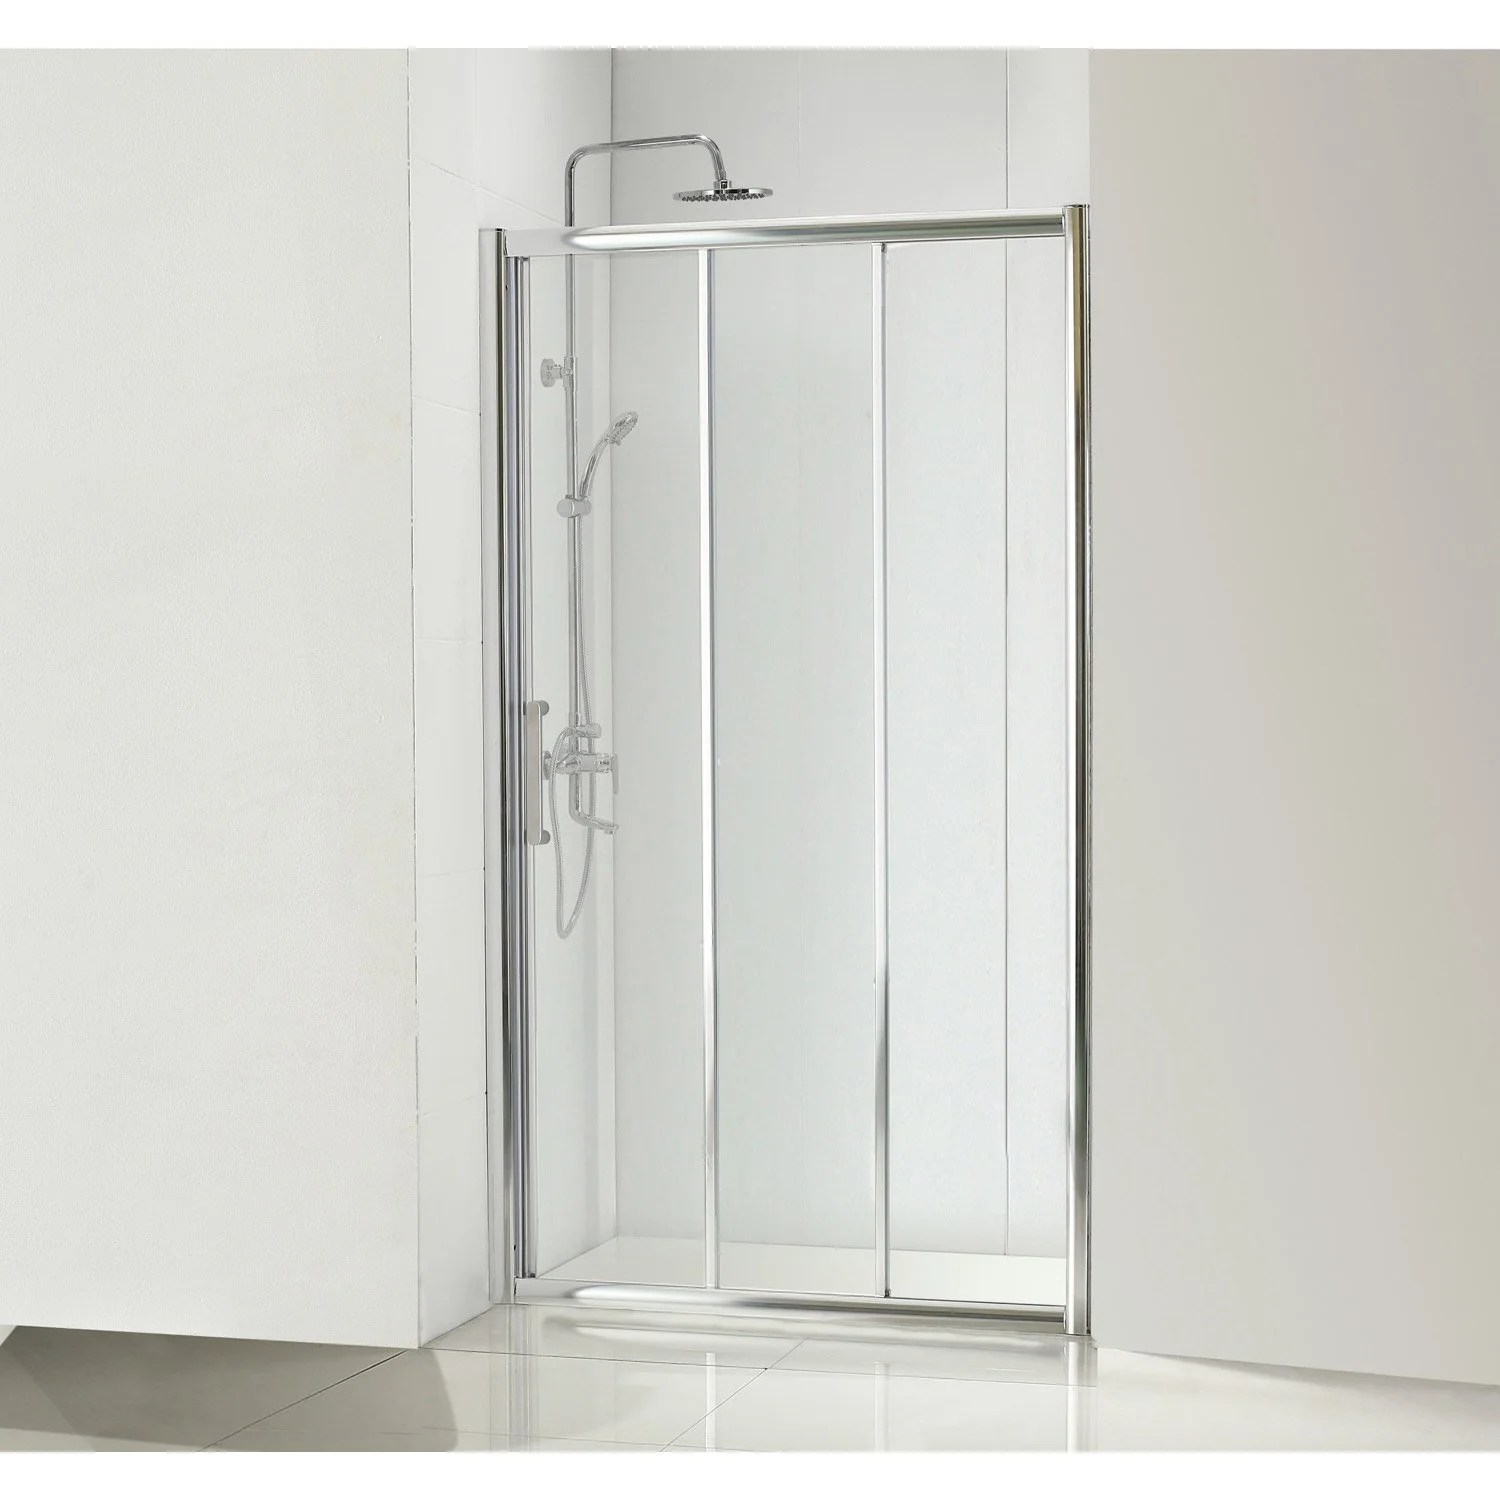 Porte Coulissante Magasin Porte De Douche Coulissante 90 Cm Transparent Quad